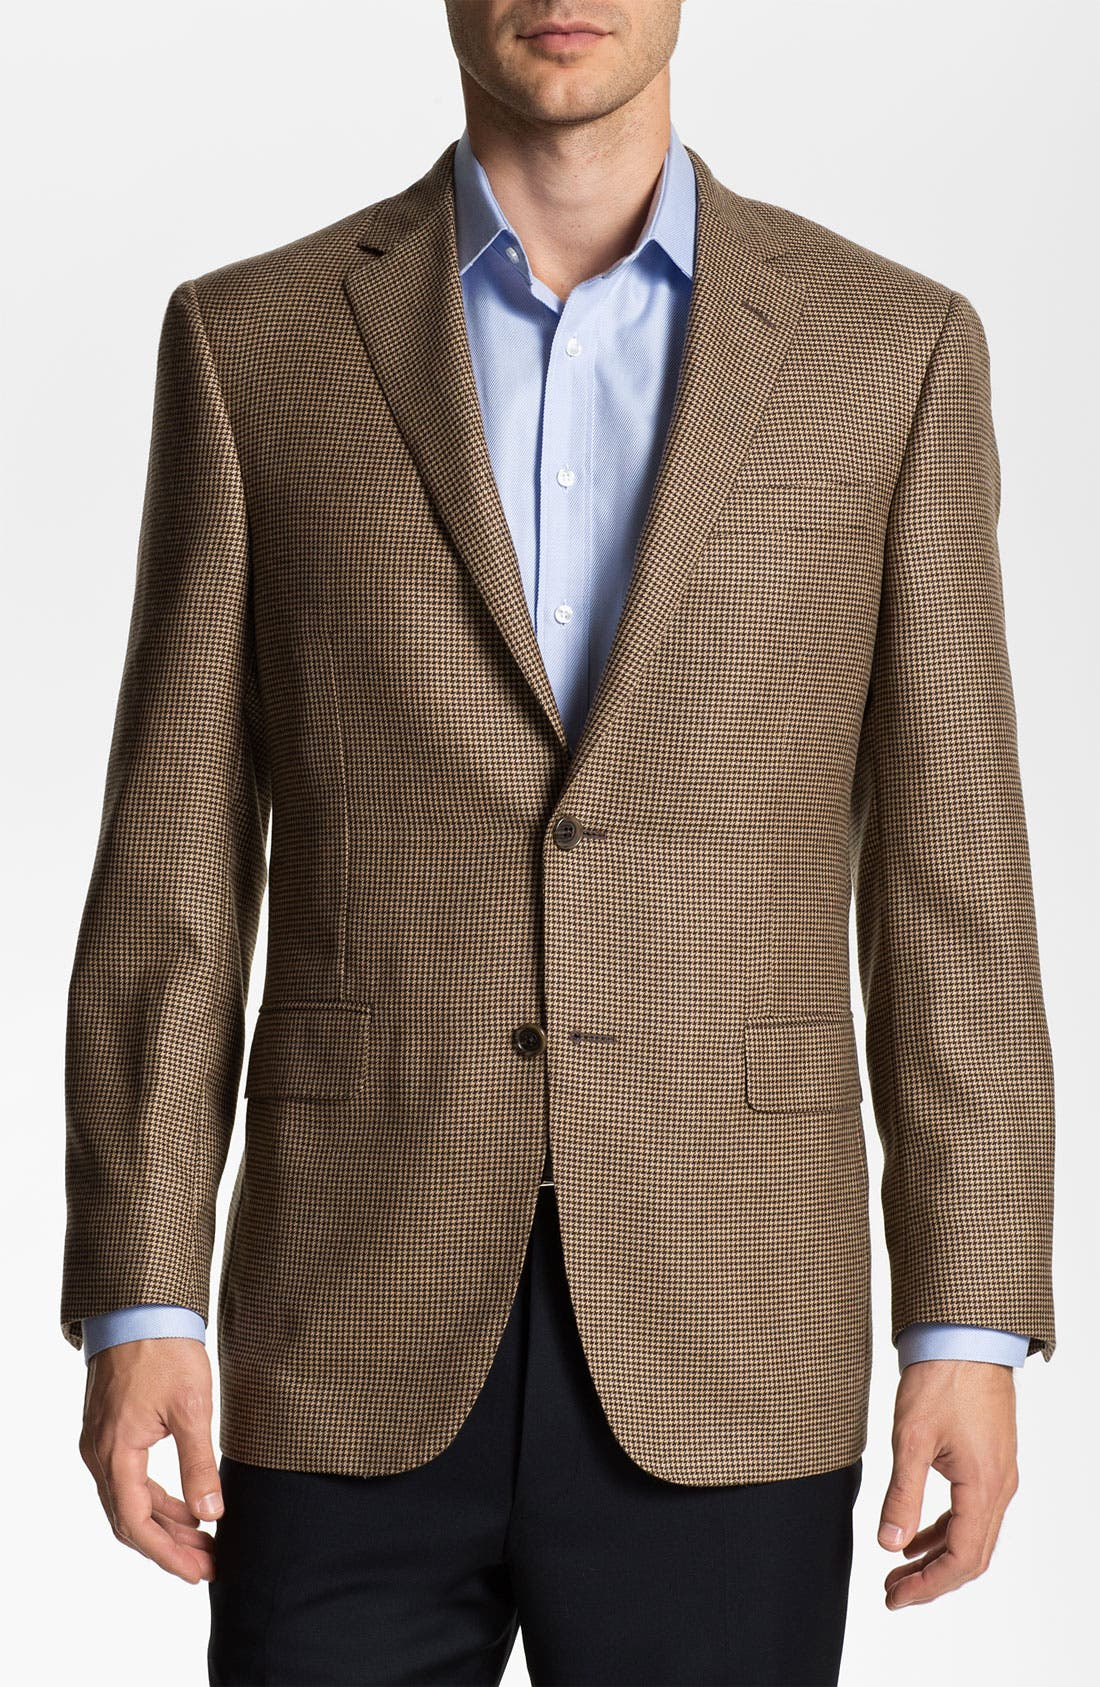 Main Image - Samuelsohn Cashmere Houndstooth Sportcoat